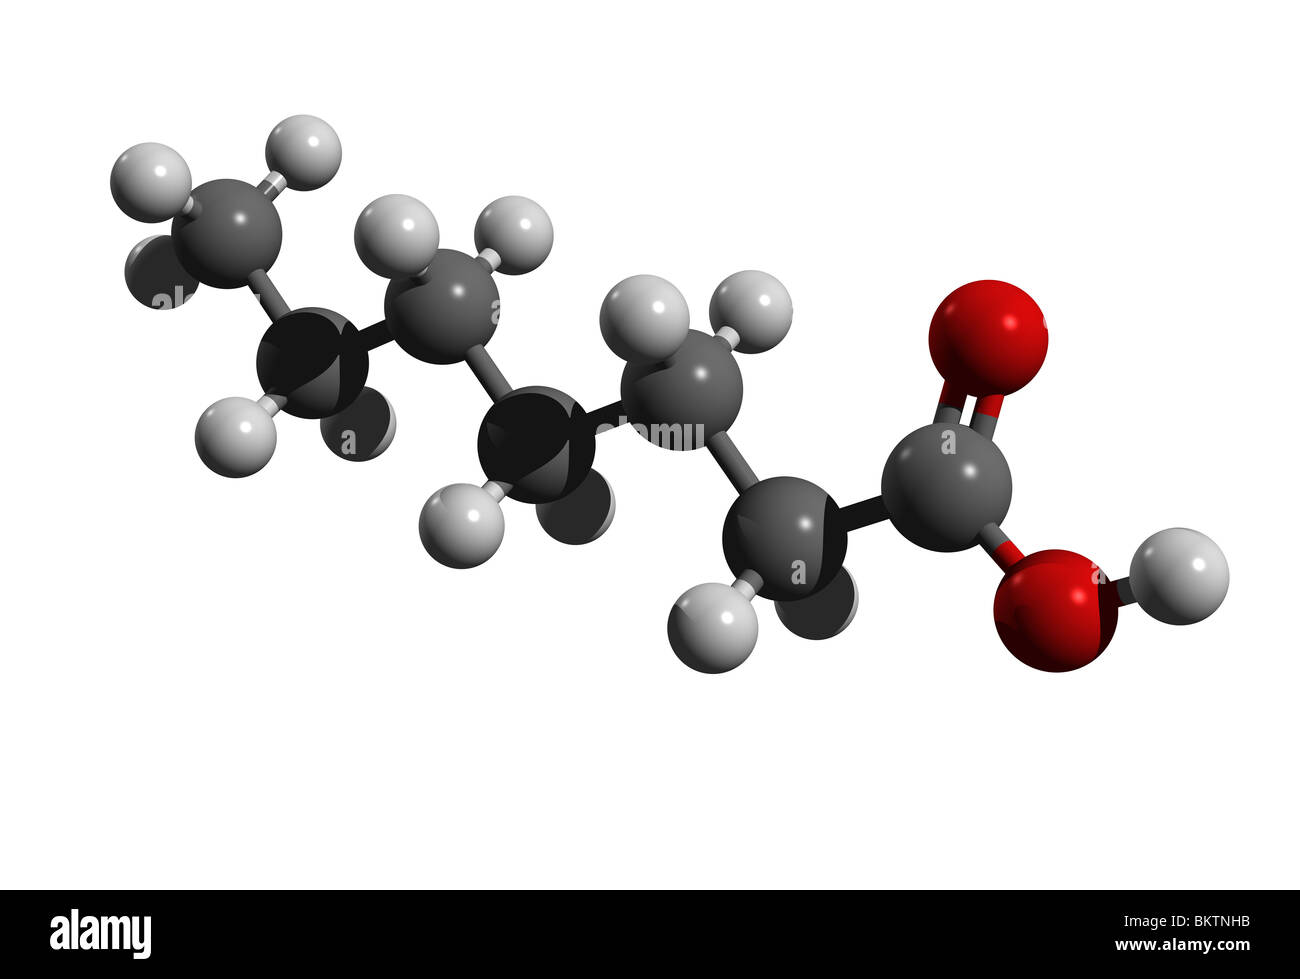 Heptanoic acid (colorcode: black=carbon, white=hydrogen, red=oxygen) Stock Photo